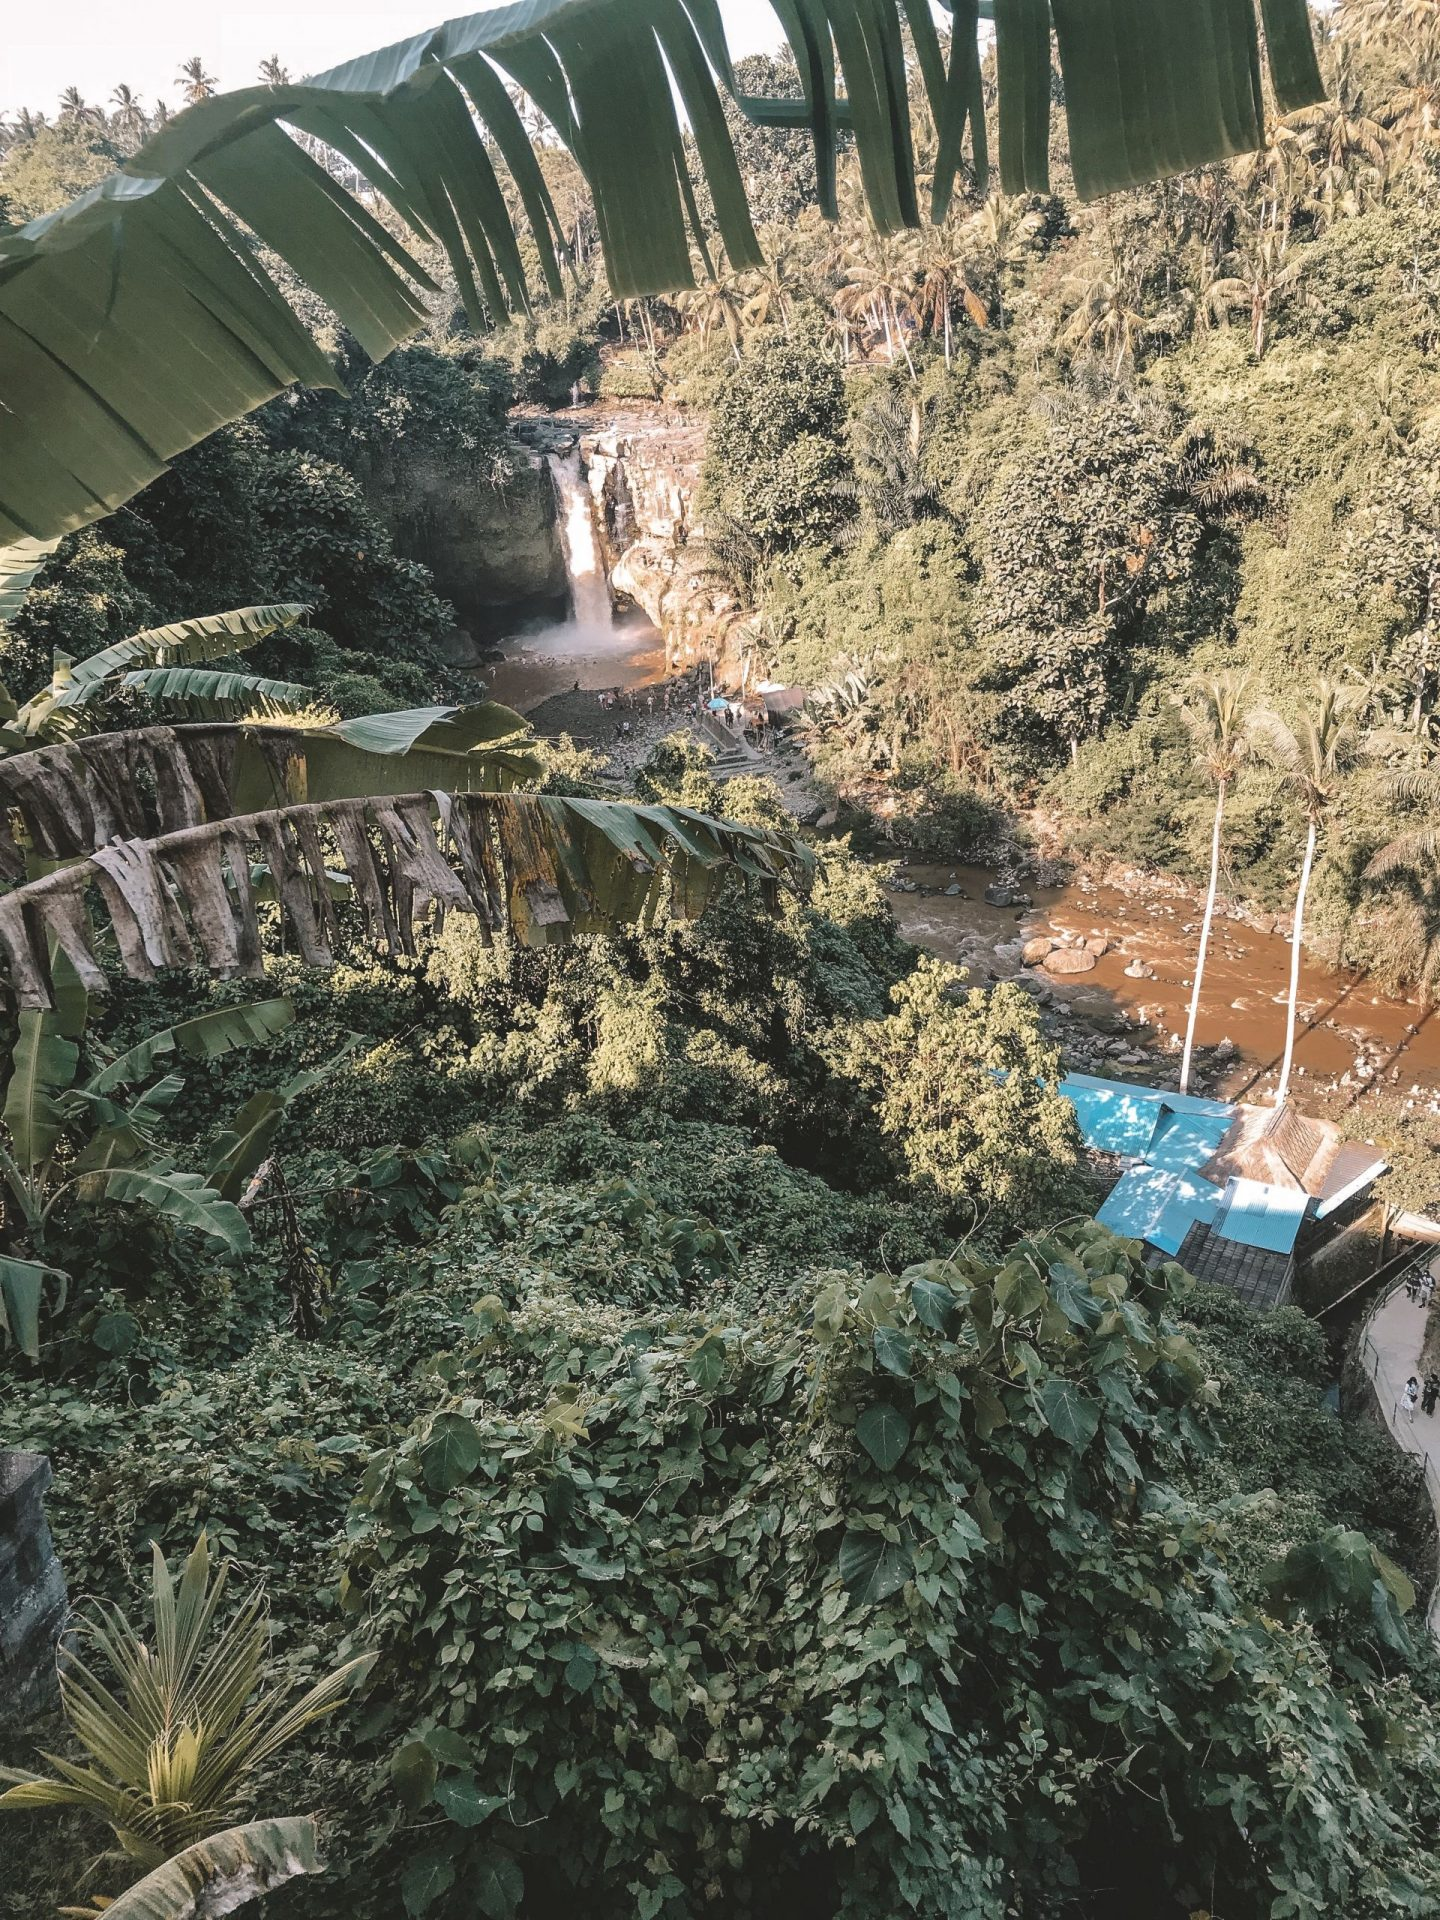 waterfalls in ubud or surroundings, where to find waterfalls in ubud, tips for activities in ubud, bali, 3 days in ubud